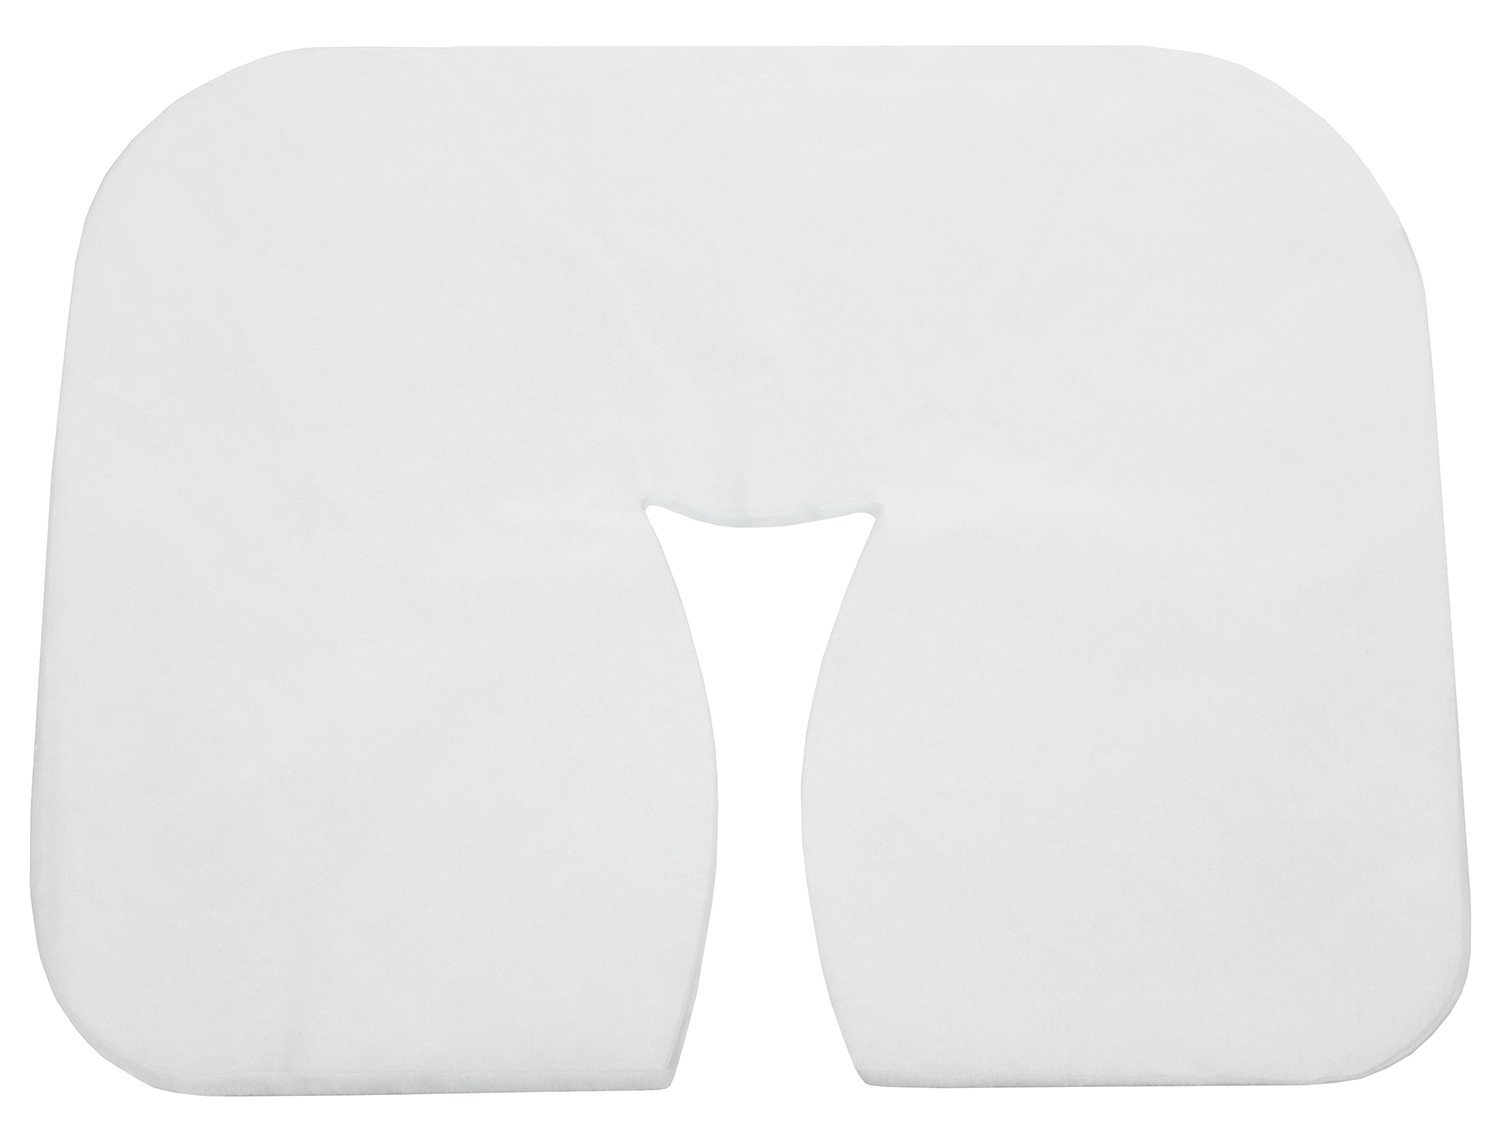 SkinAct Disposable Face Rest Cover